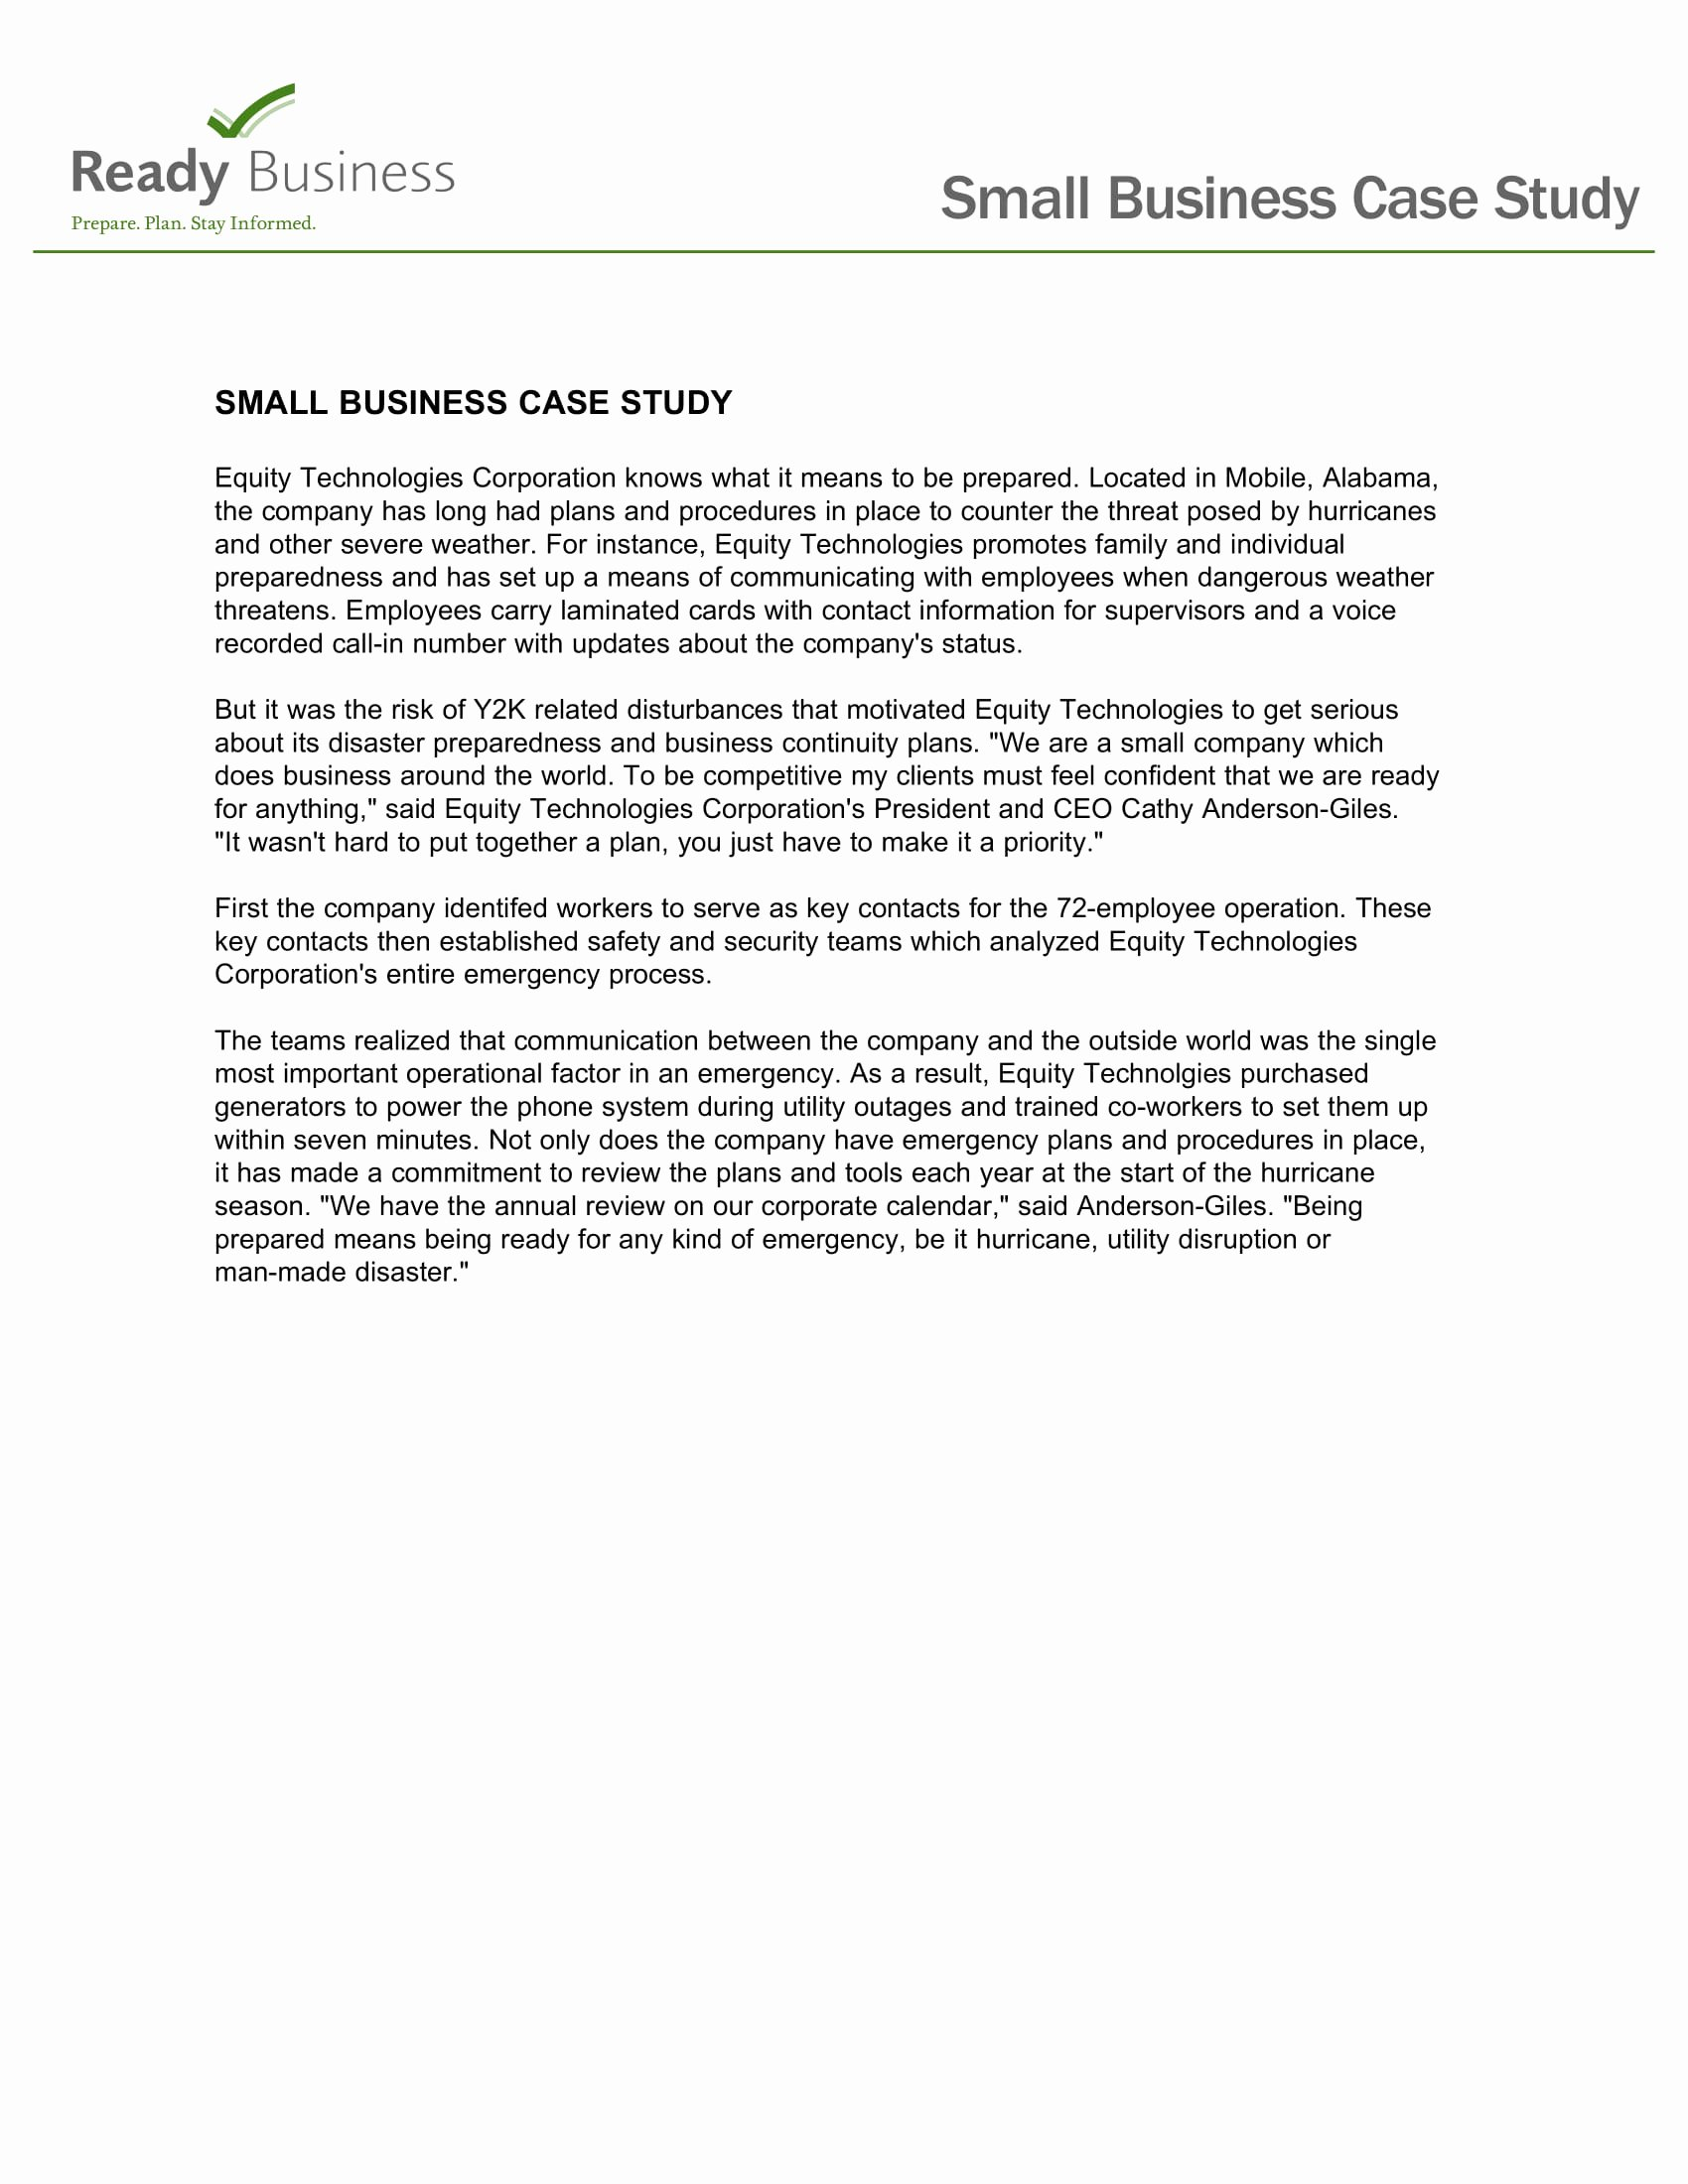 Business Case Study Examples Beautiful 9 Business Case Analysis Examples Pdf